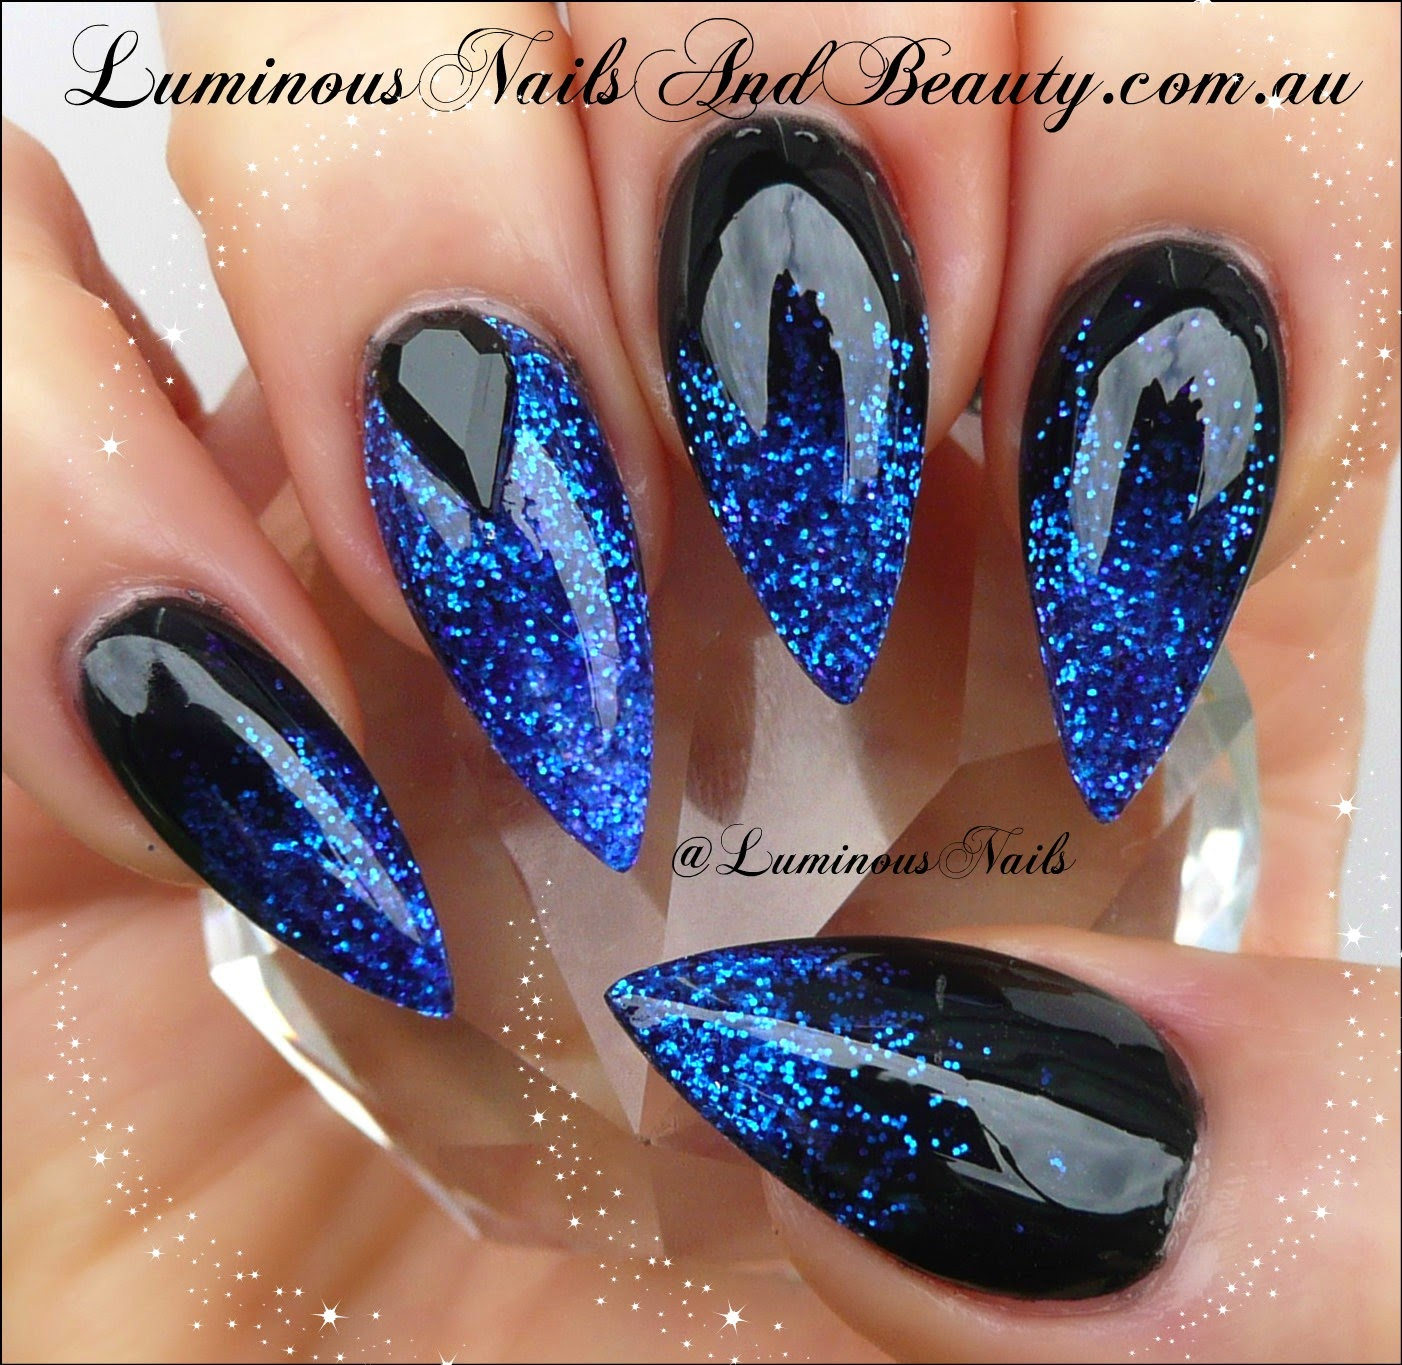 Royal Blue and Black Nail Designs